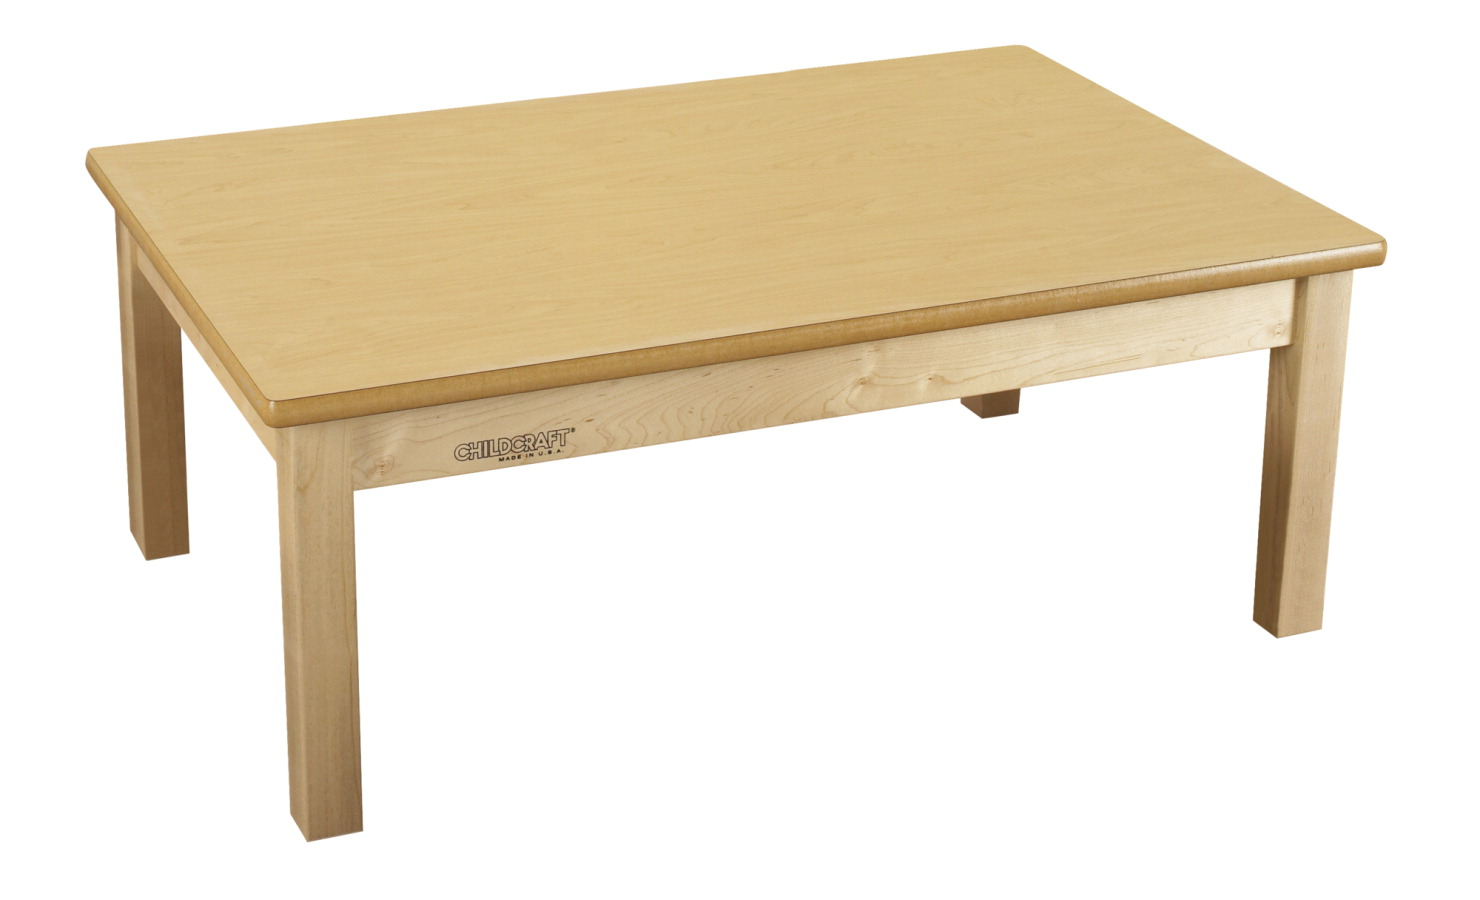 Childcraft Wood Table, Laminate Top, Rectangle, 36 x 48 x 24 Inches